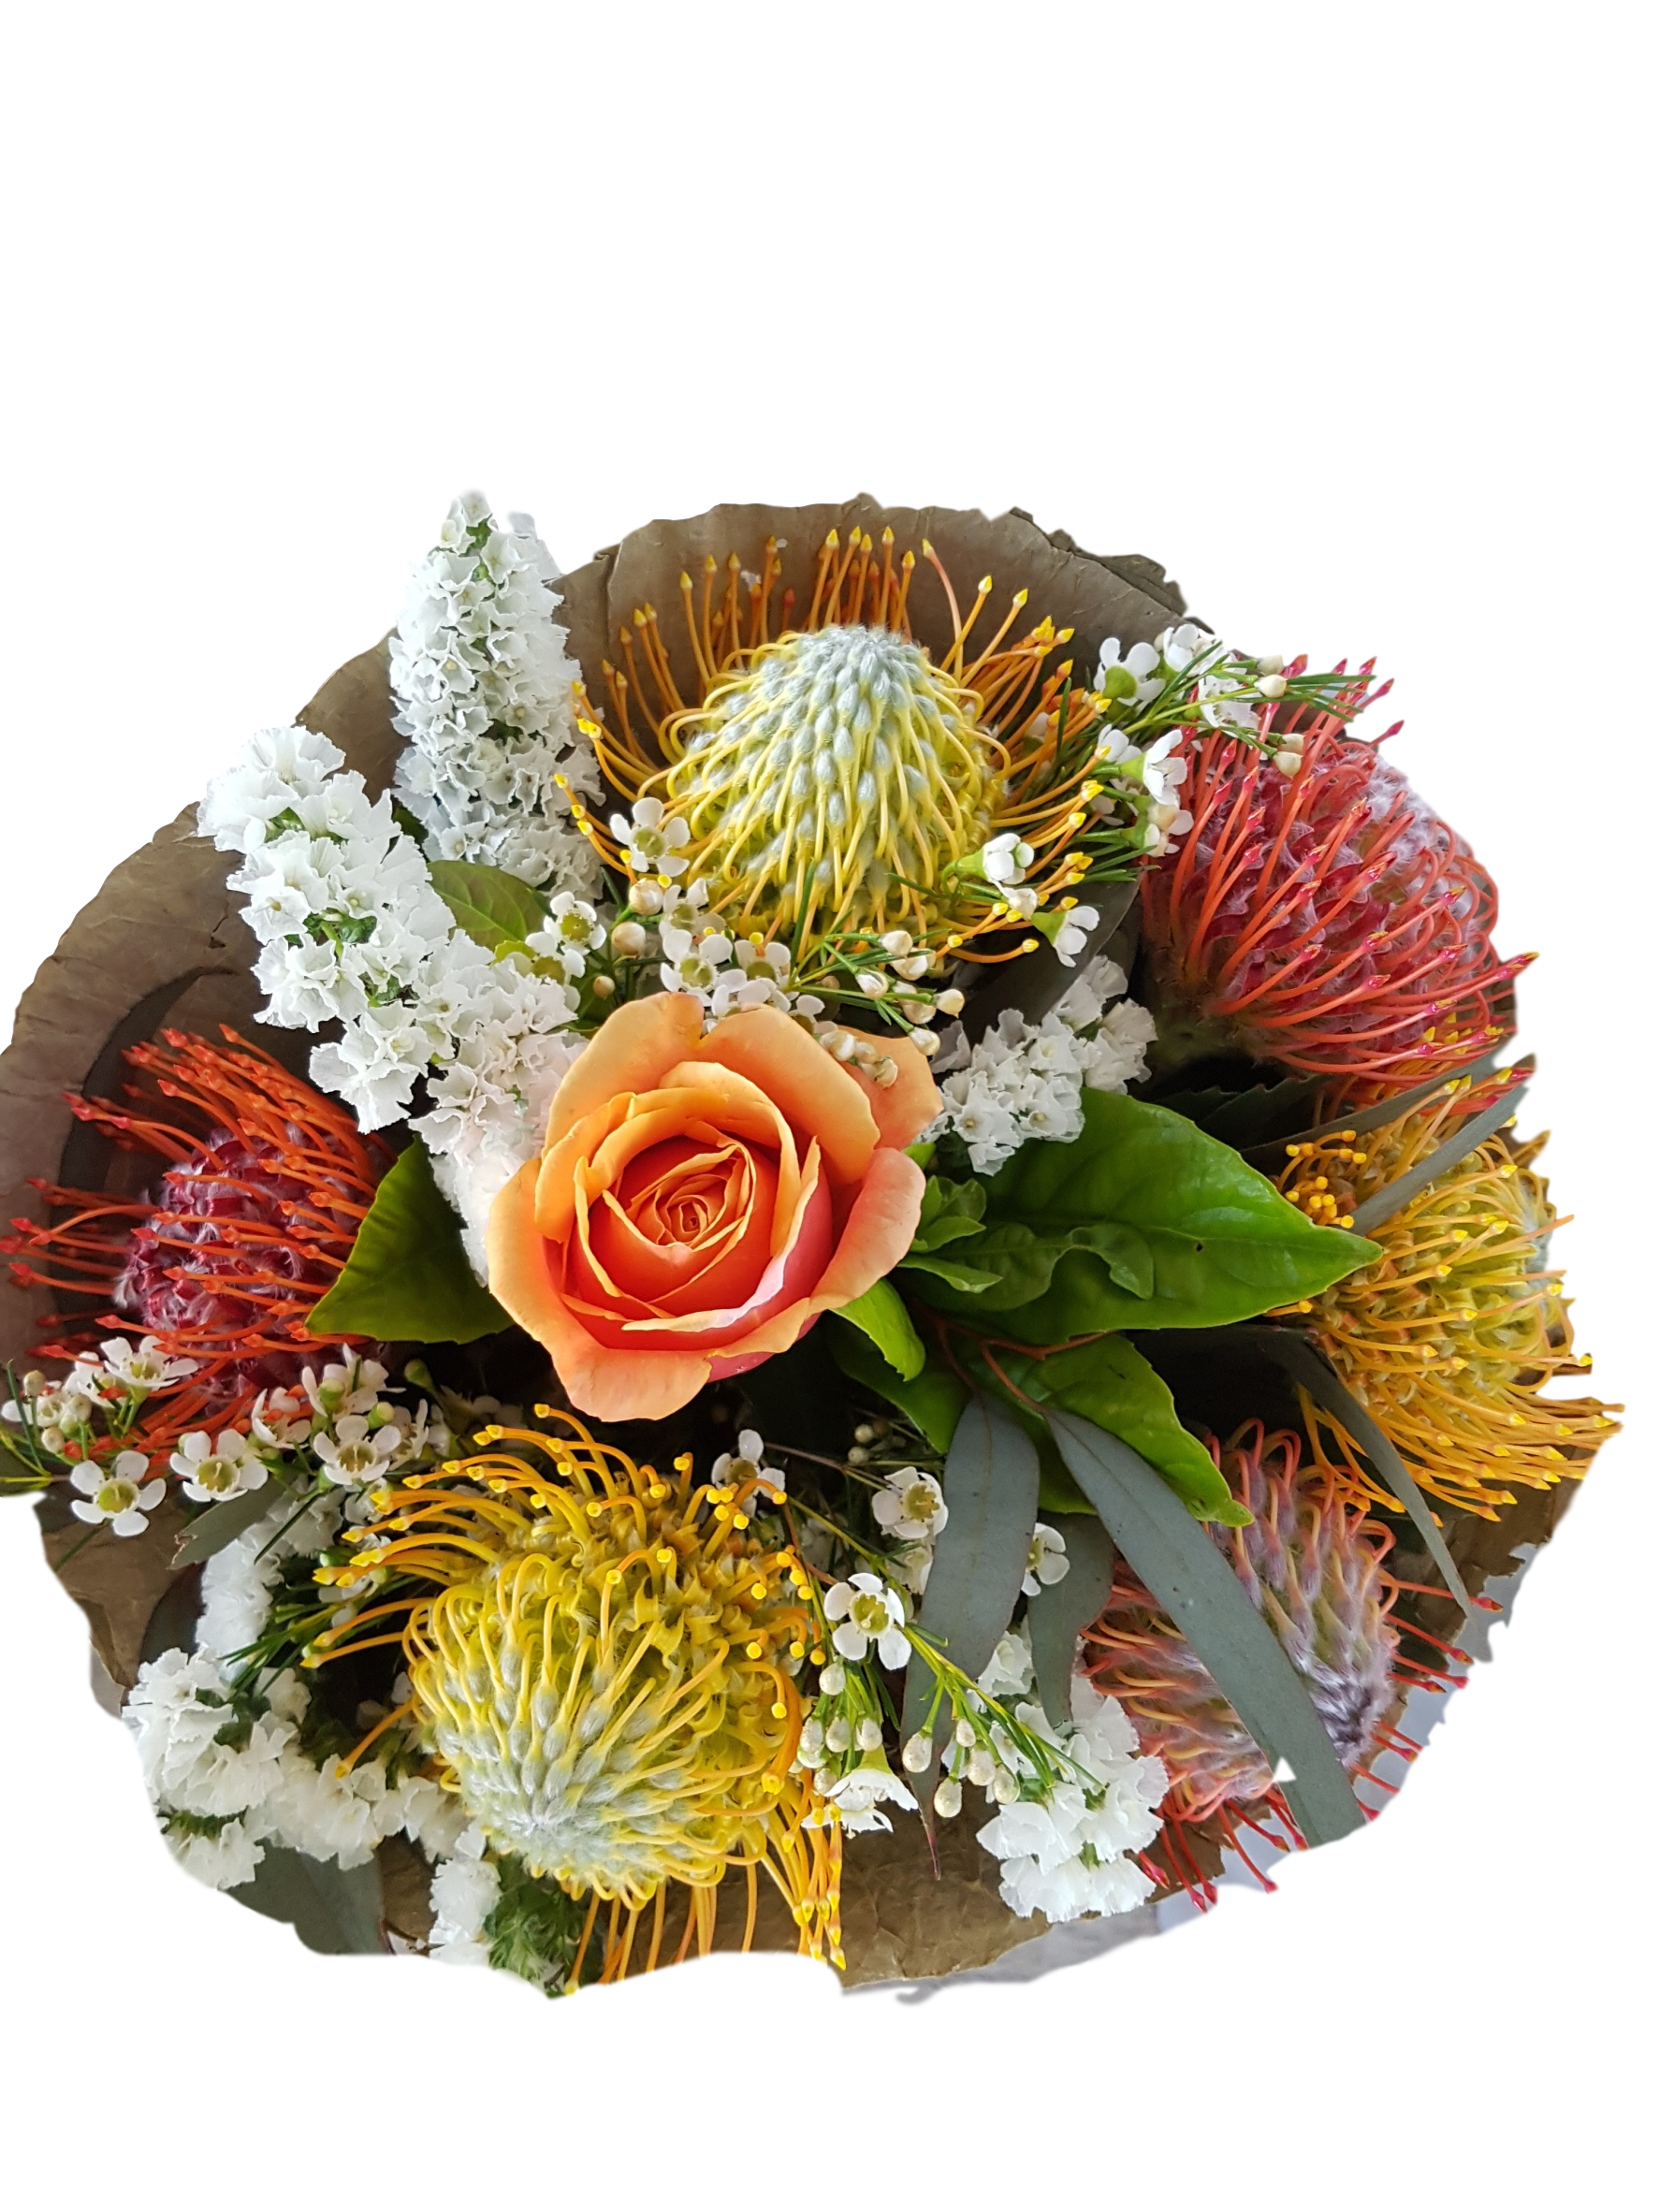 A SEASONAL MIX OF LONGER LASTING NATIVE FLOWER, STATICE, PINCUSHIONS, WAX AND A SINGLE ROSE.  NATIVE FLOWERS MAY CHANGE DUE TO AVAILABILITY .  FLOWERS WRAPPED IN A LOTUS LEAF.